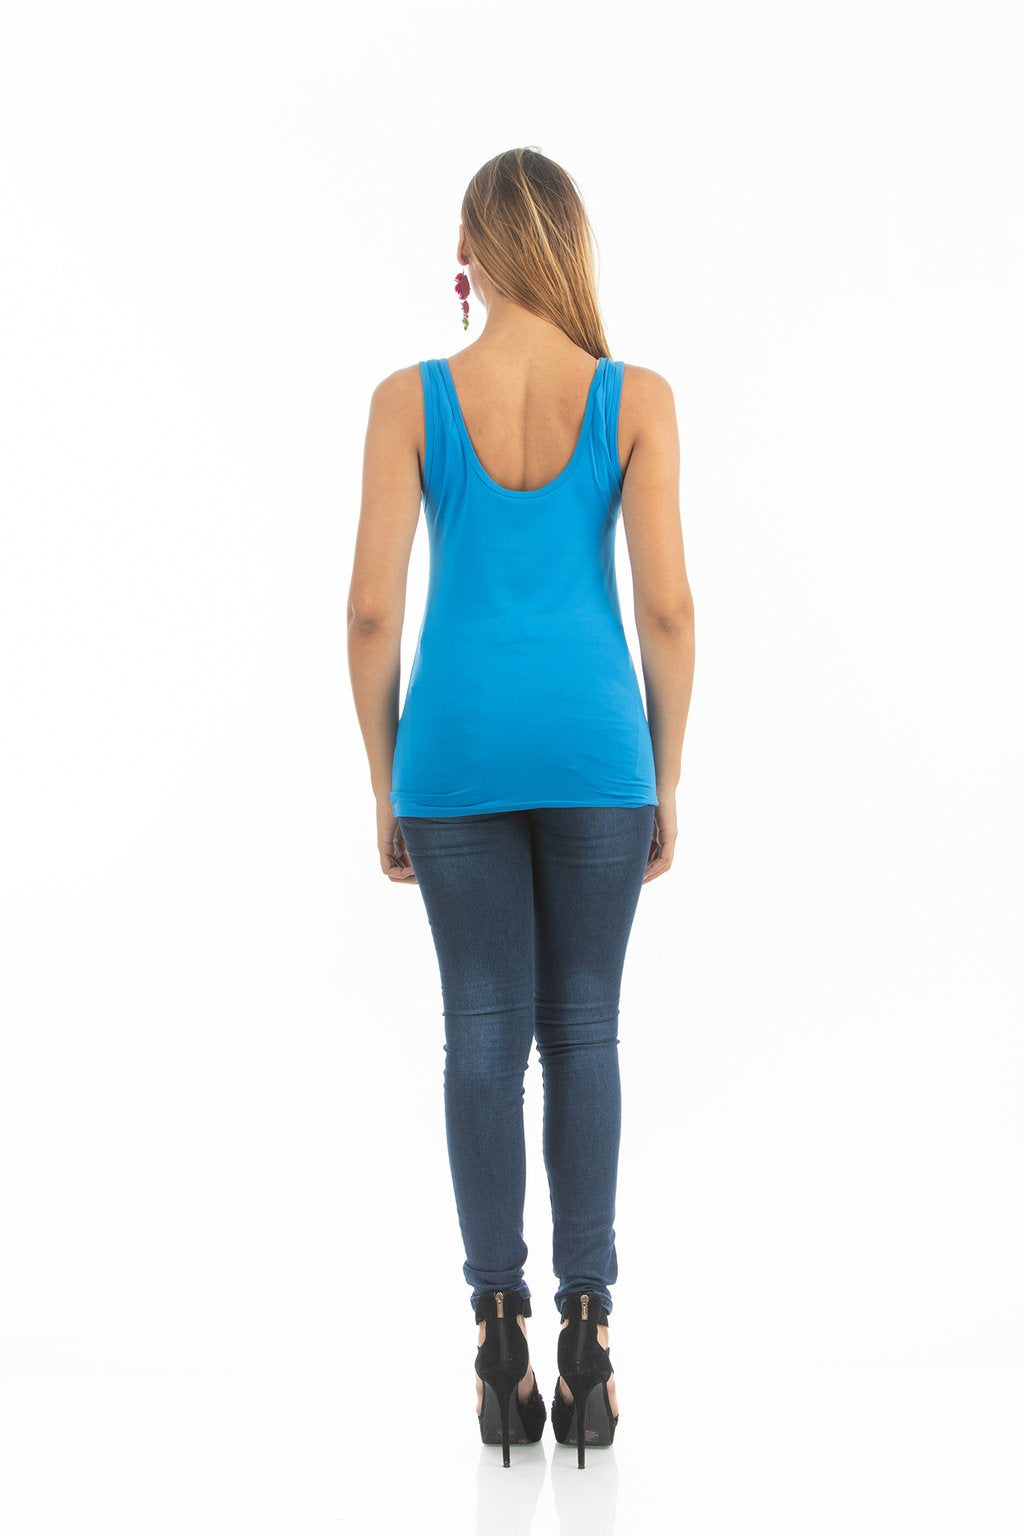 Brilliant Blue Top | NR-313